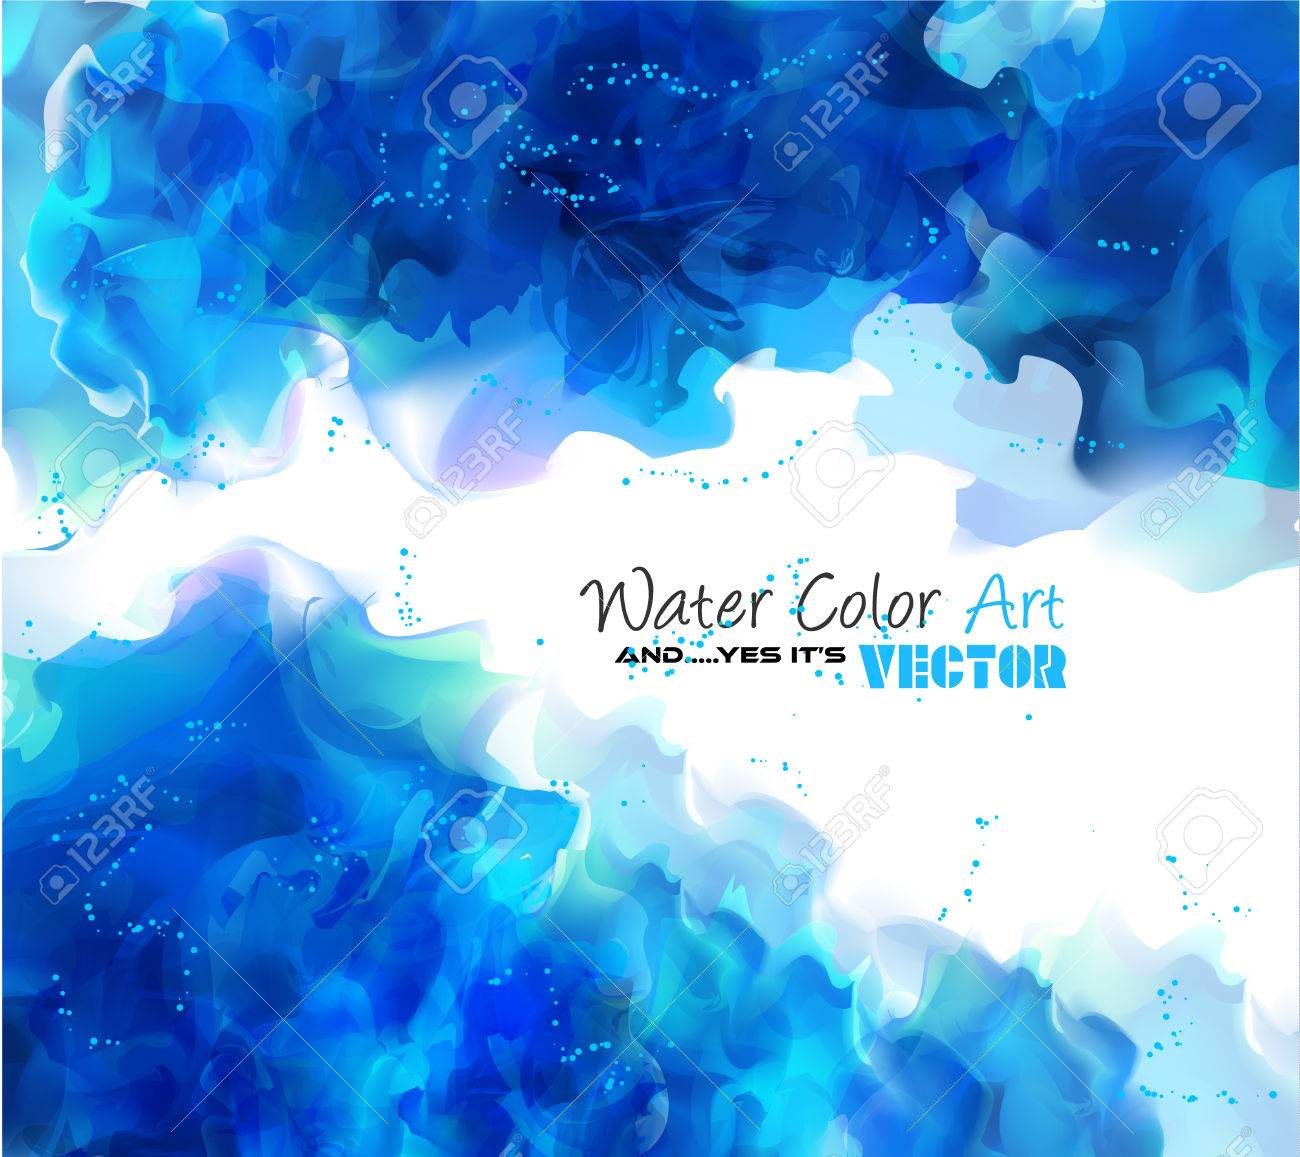 Fabuloso Watercolor Background And Yes It's Vector! To Use For Poster  FK01